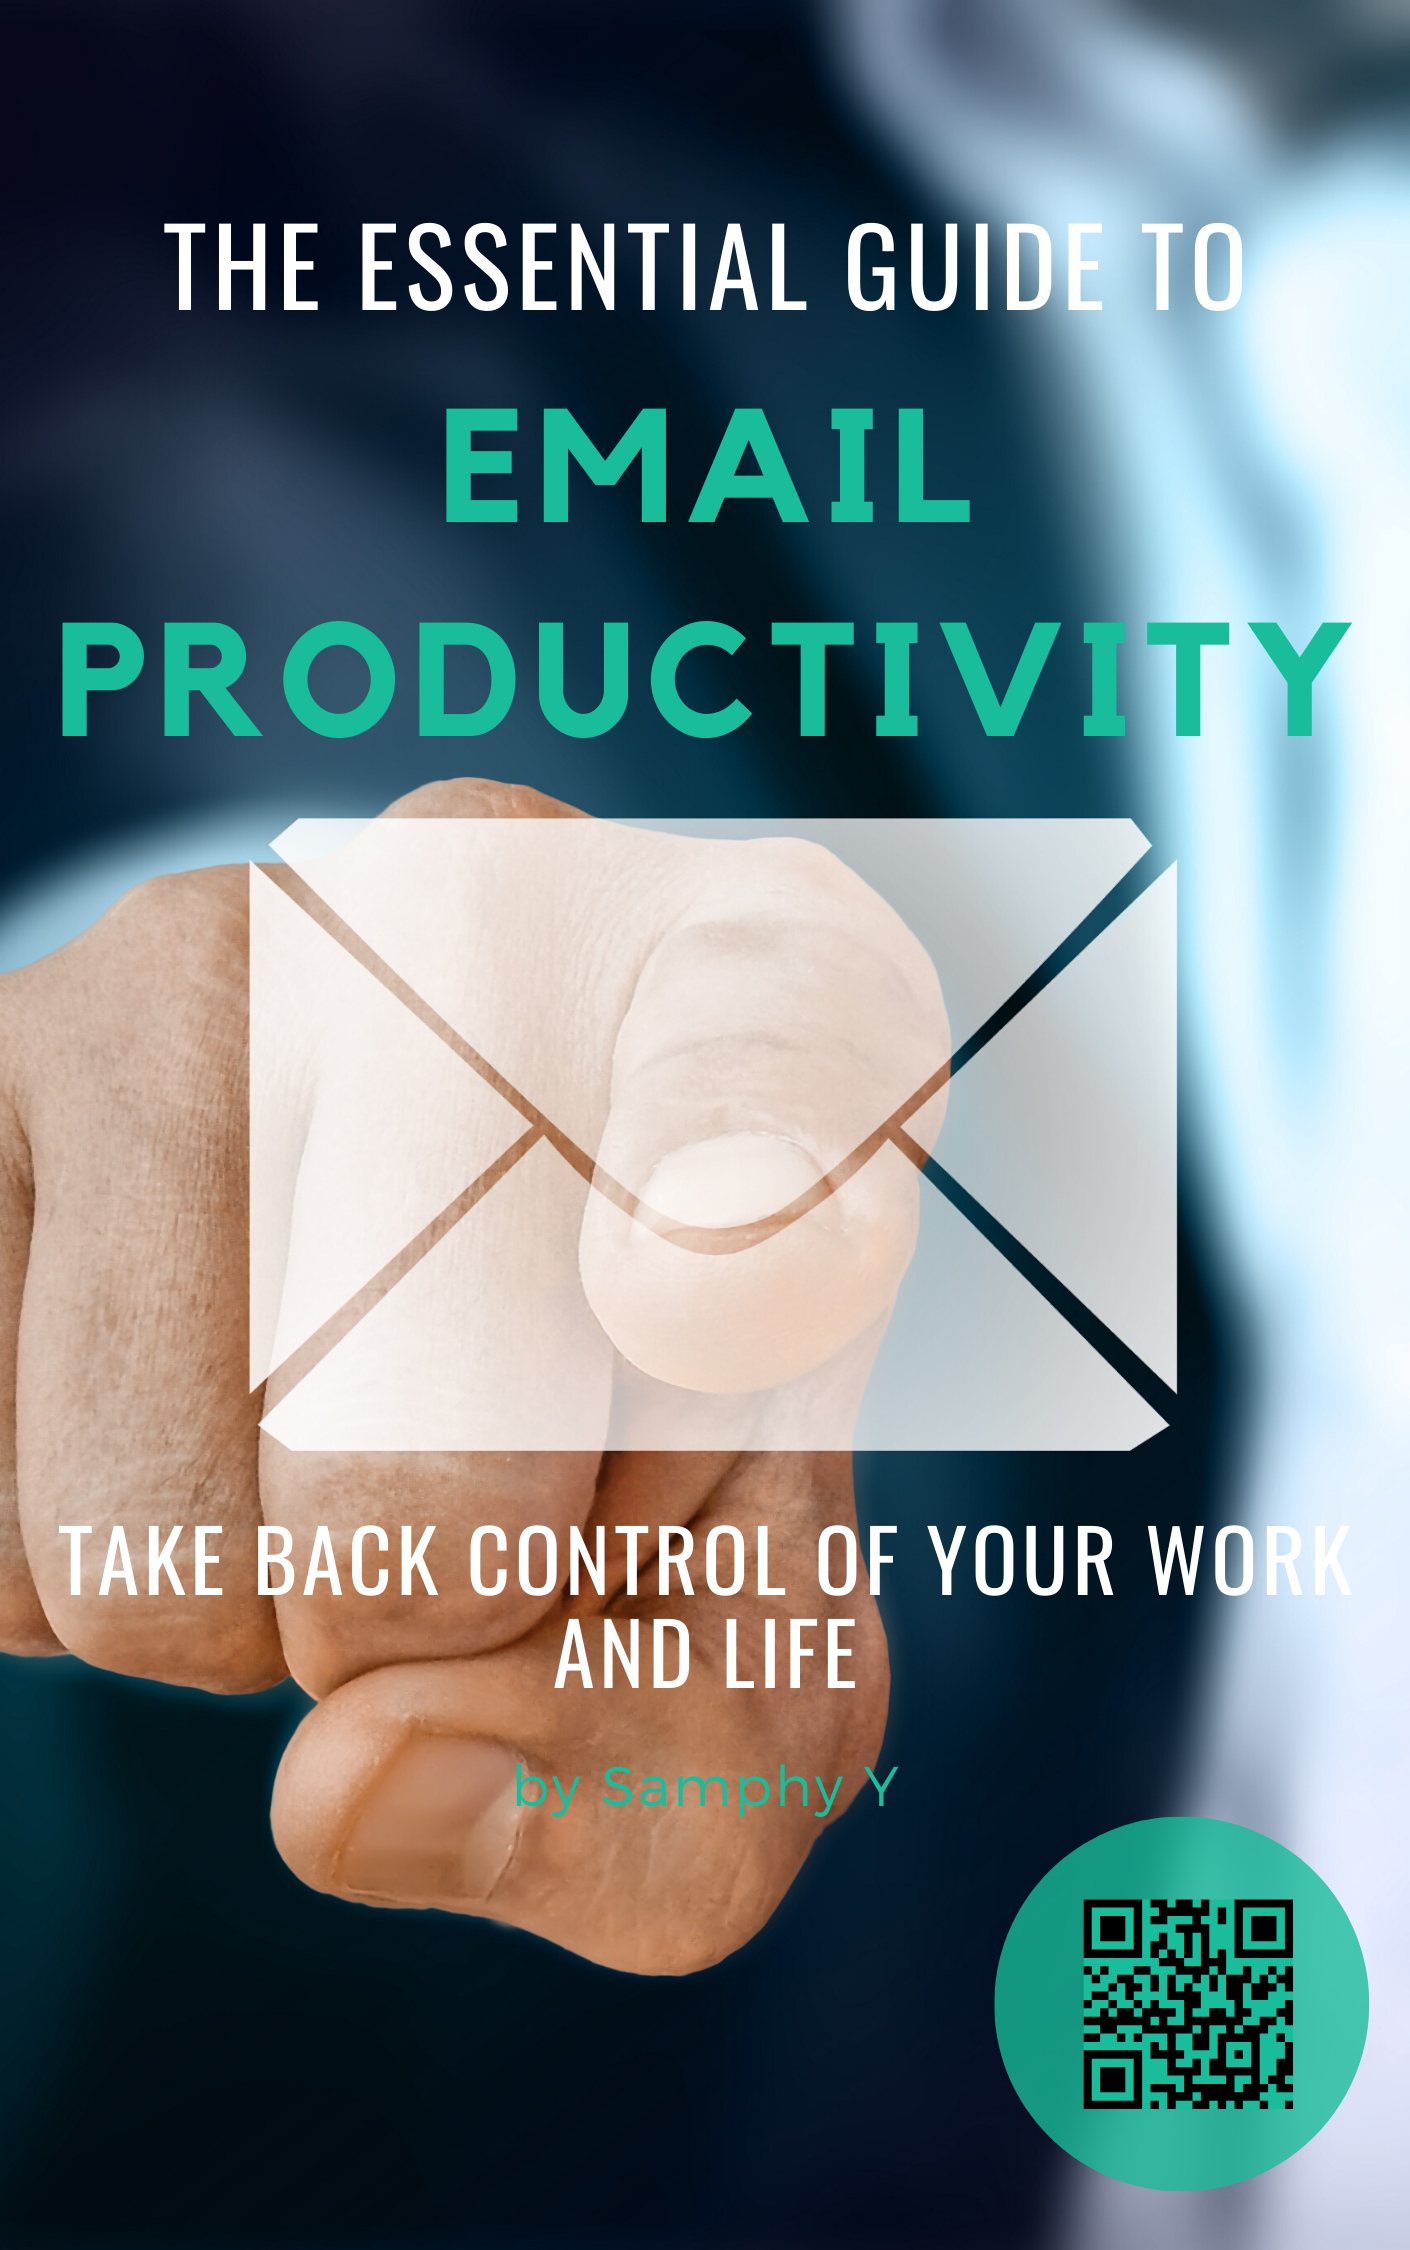 The Essential Guide to Email Productivity